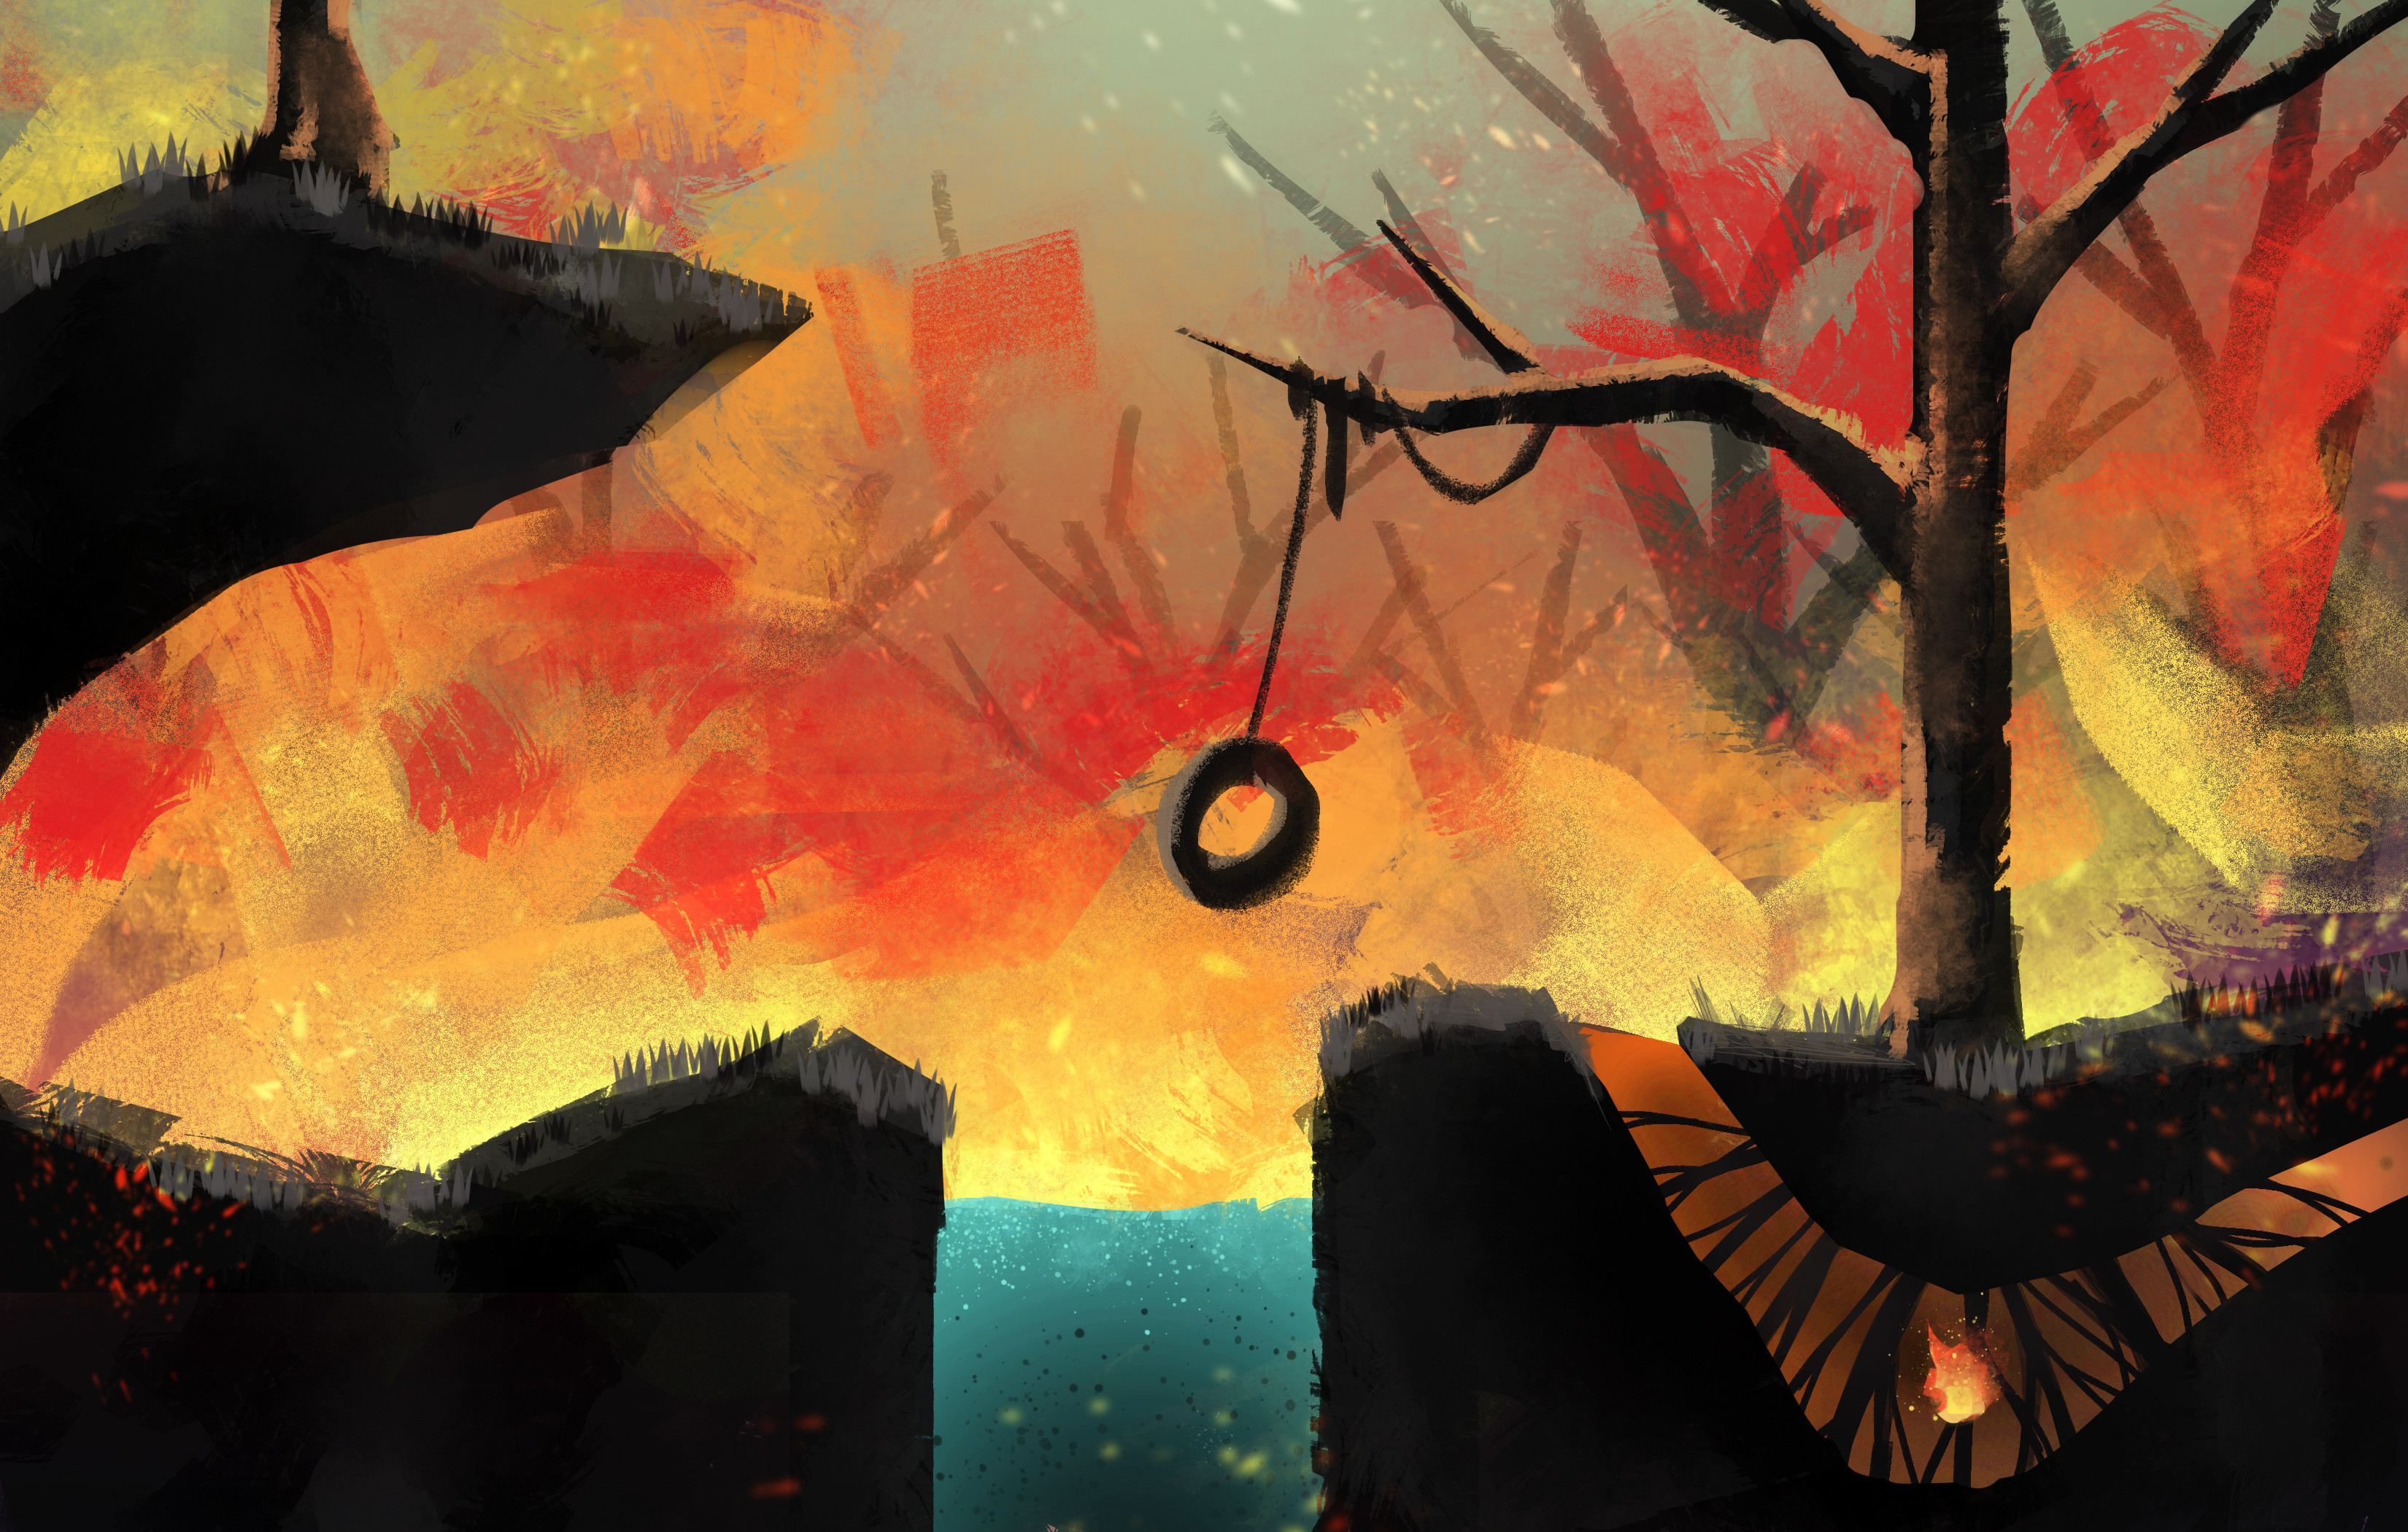 Concept art created for fiery forest area level.